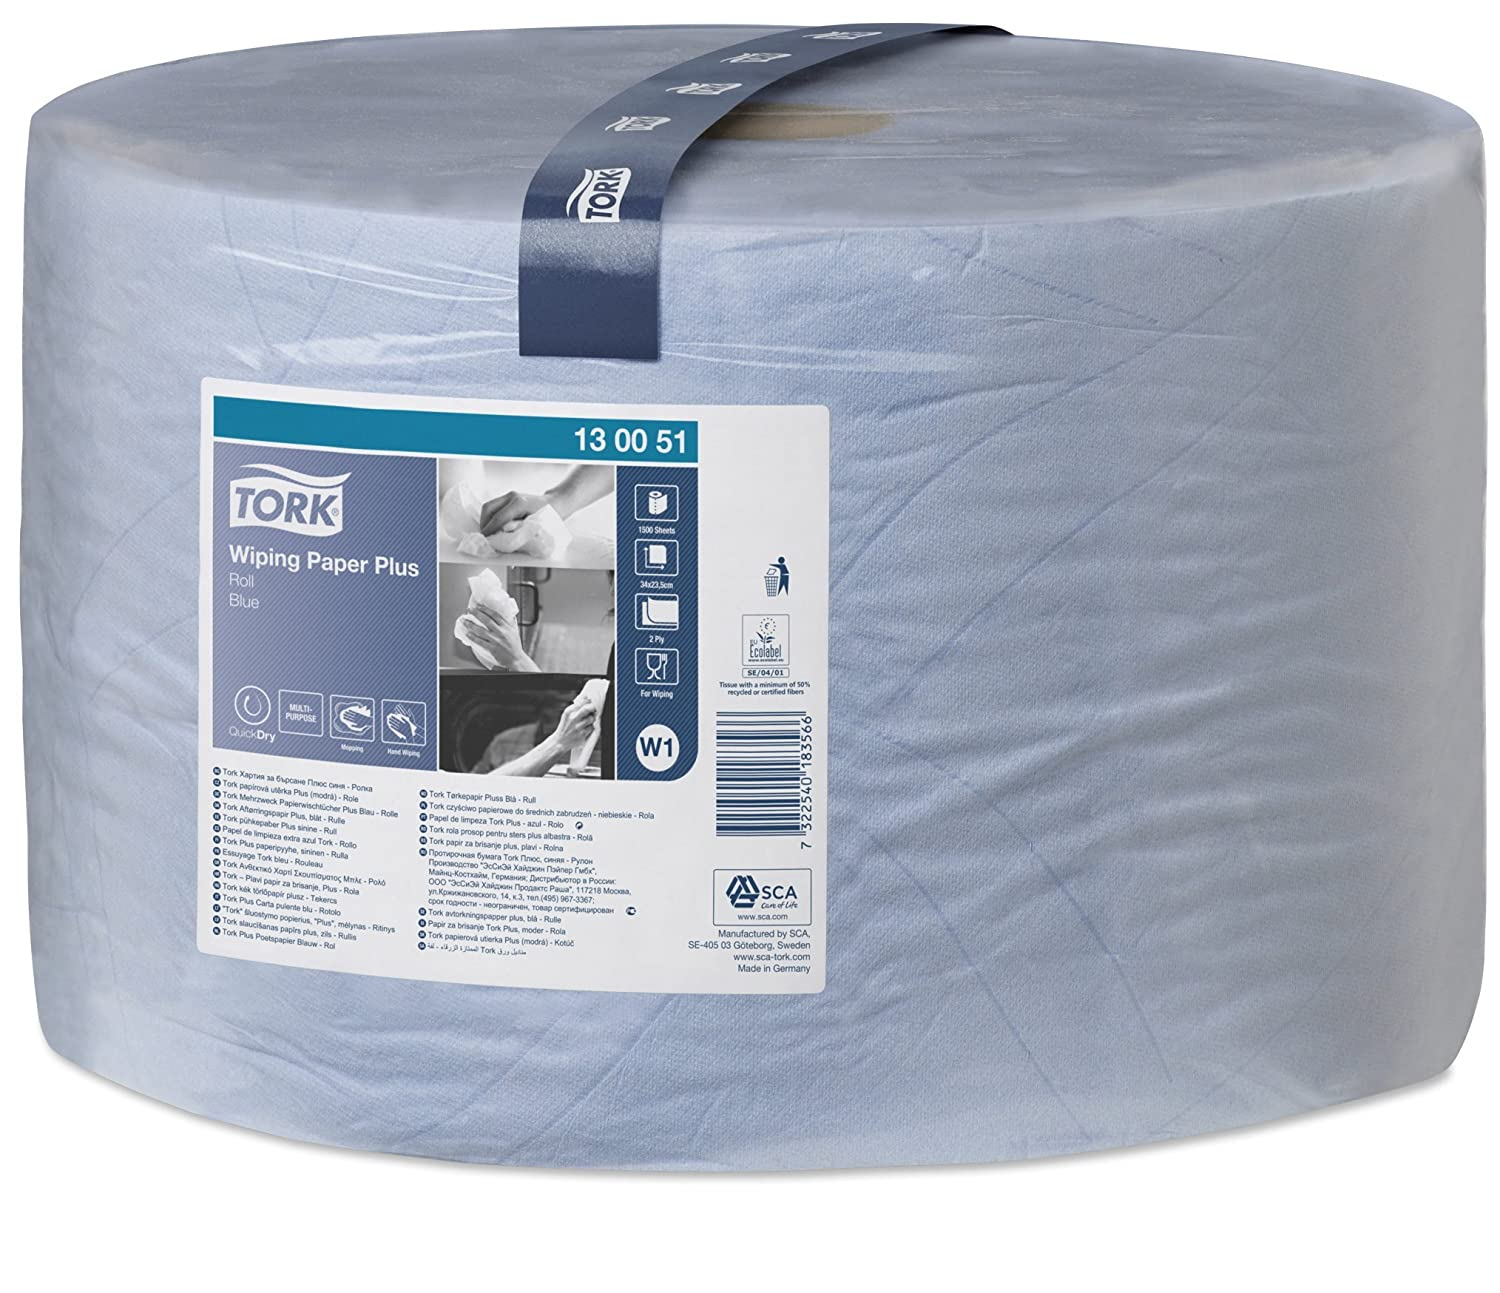 Tork 130051 Wiping Paper Plus / 2 Ply Absorbent QuickDry Paper Roll Suitable for Tork W1 Wipers Wall/Floor/Standard System/Blue / 1 x 510m / Ø 39cm